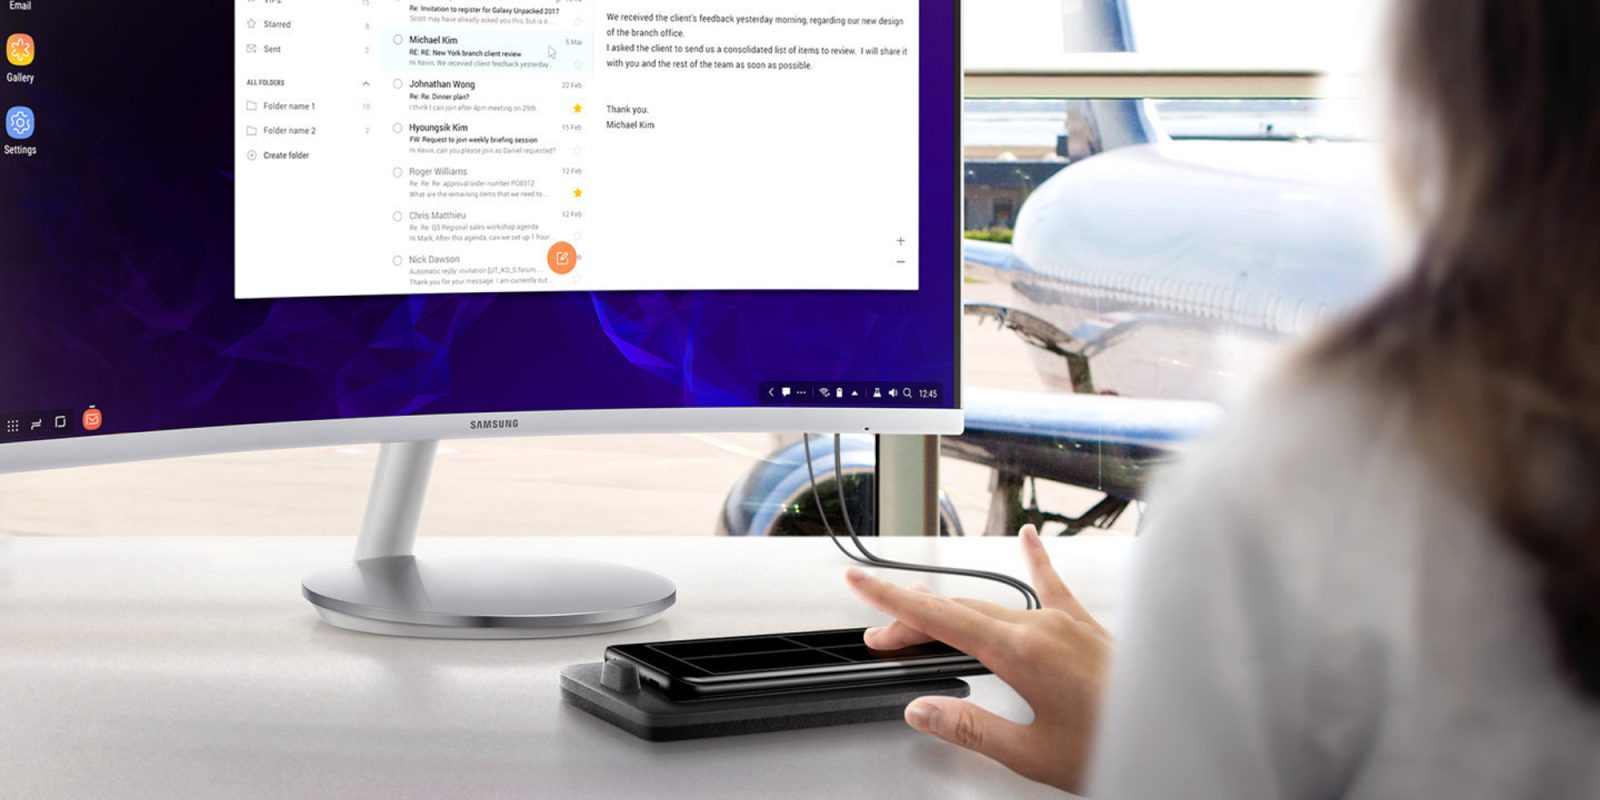 Samsung 'Linux on DeX' beta will turn your Android into a